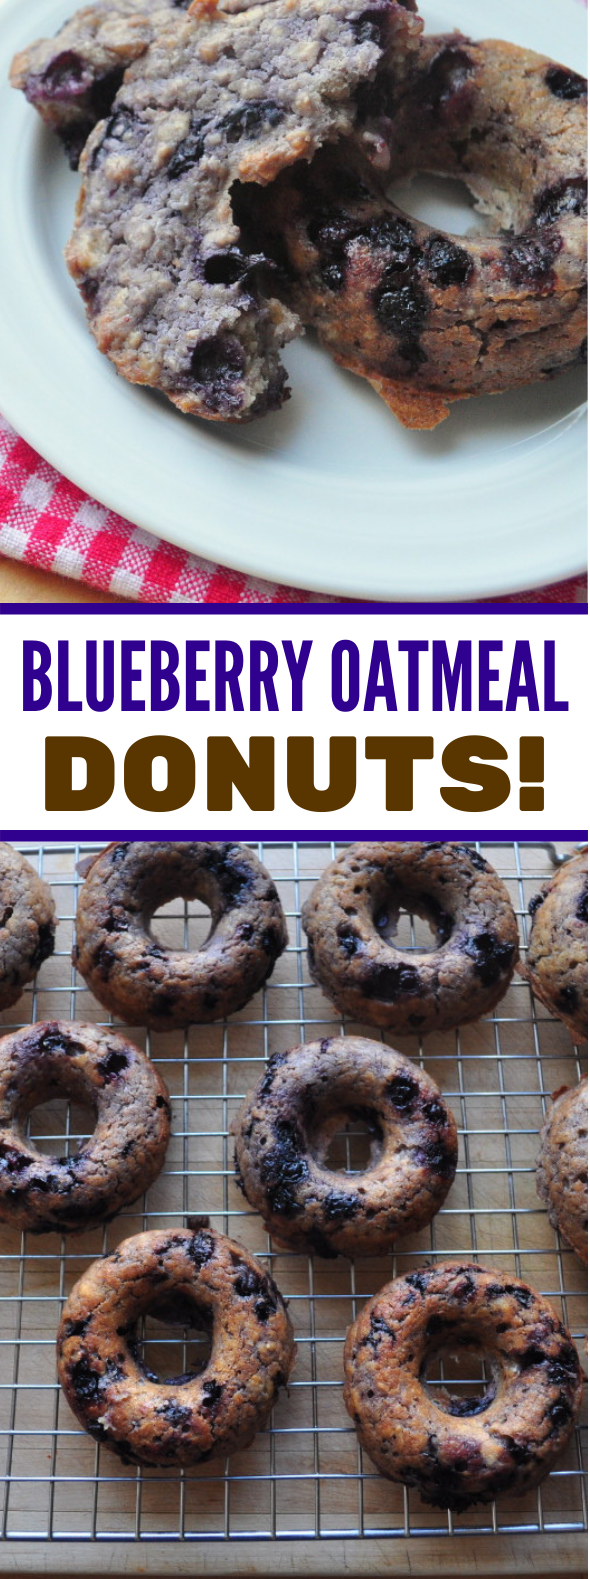 blueberry oatmeal muffin donuts! #schoolcnack #healthy